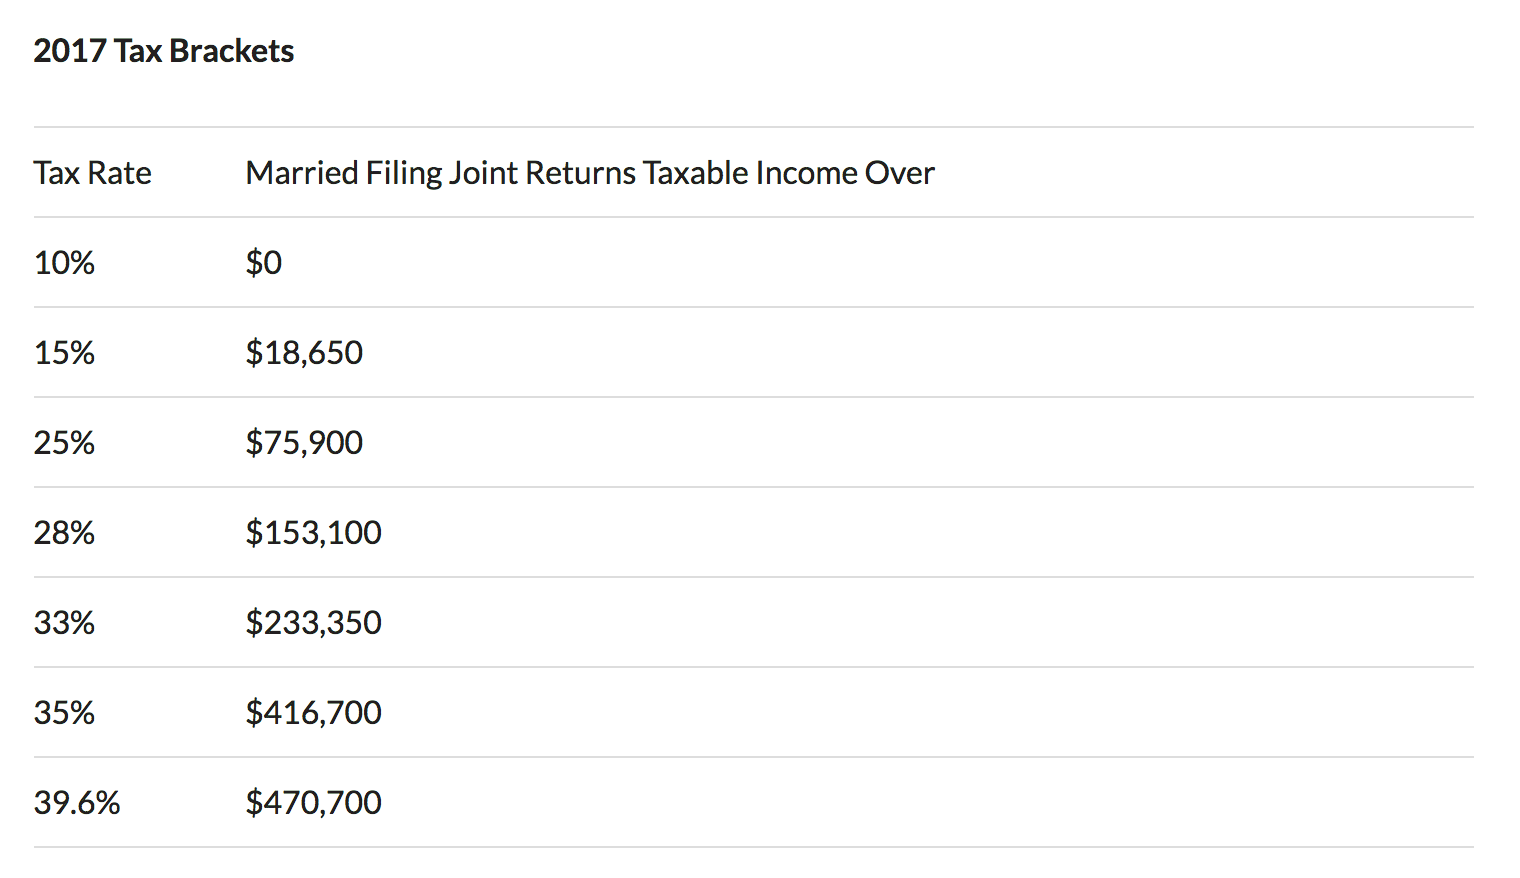 2017 married filing joint returns tax bracket